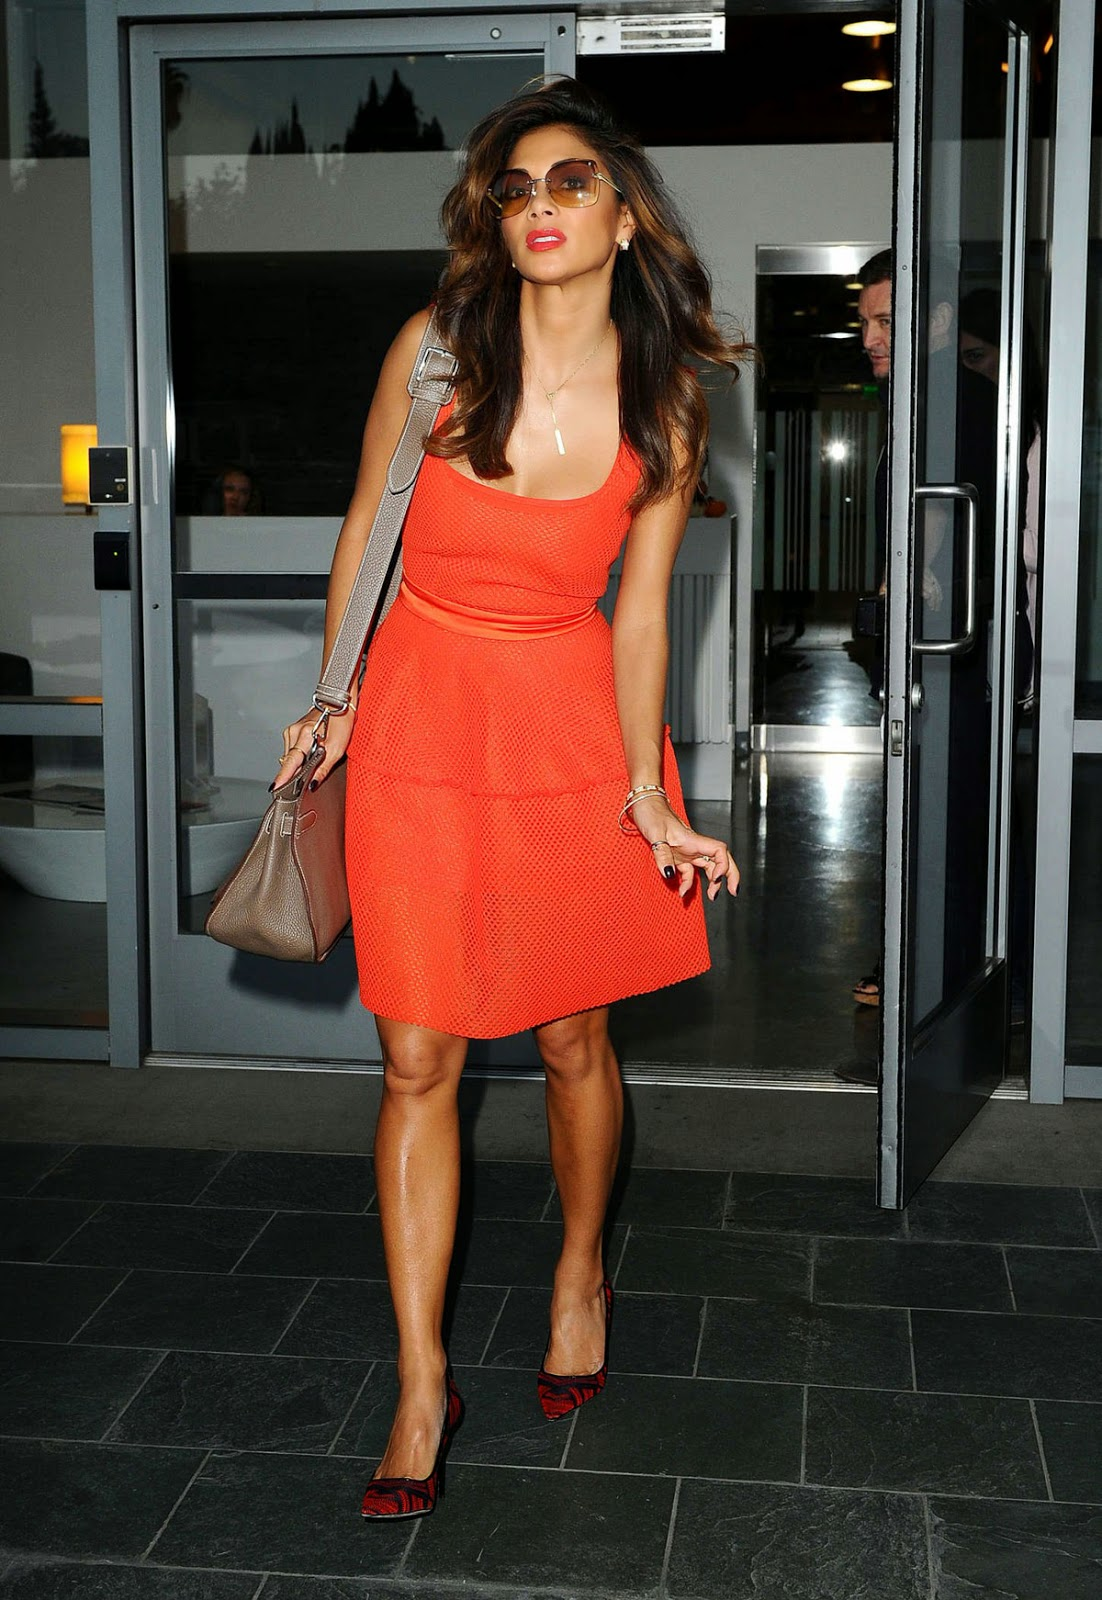 Nicole Scherzinger in orange dress at Live Nation Office pic 1